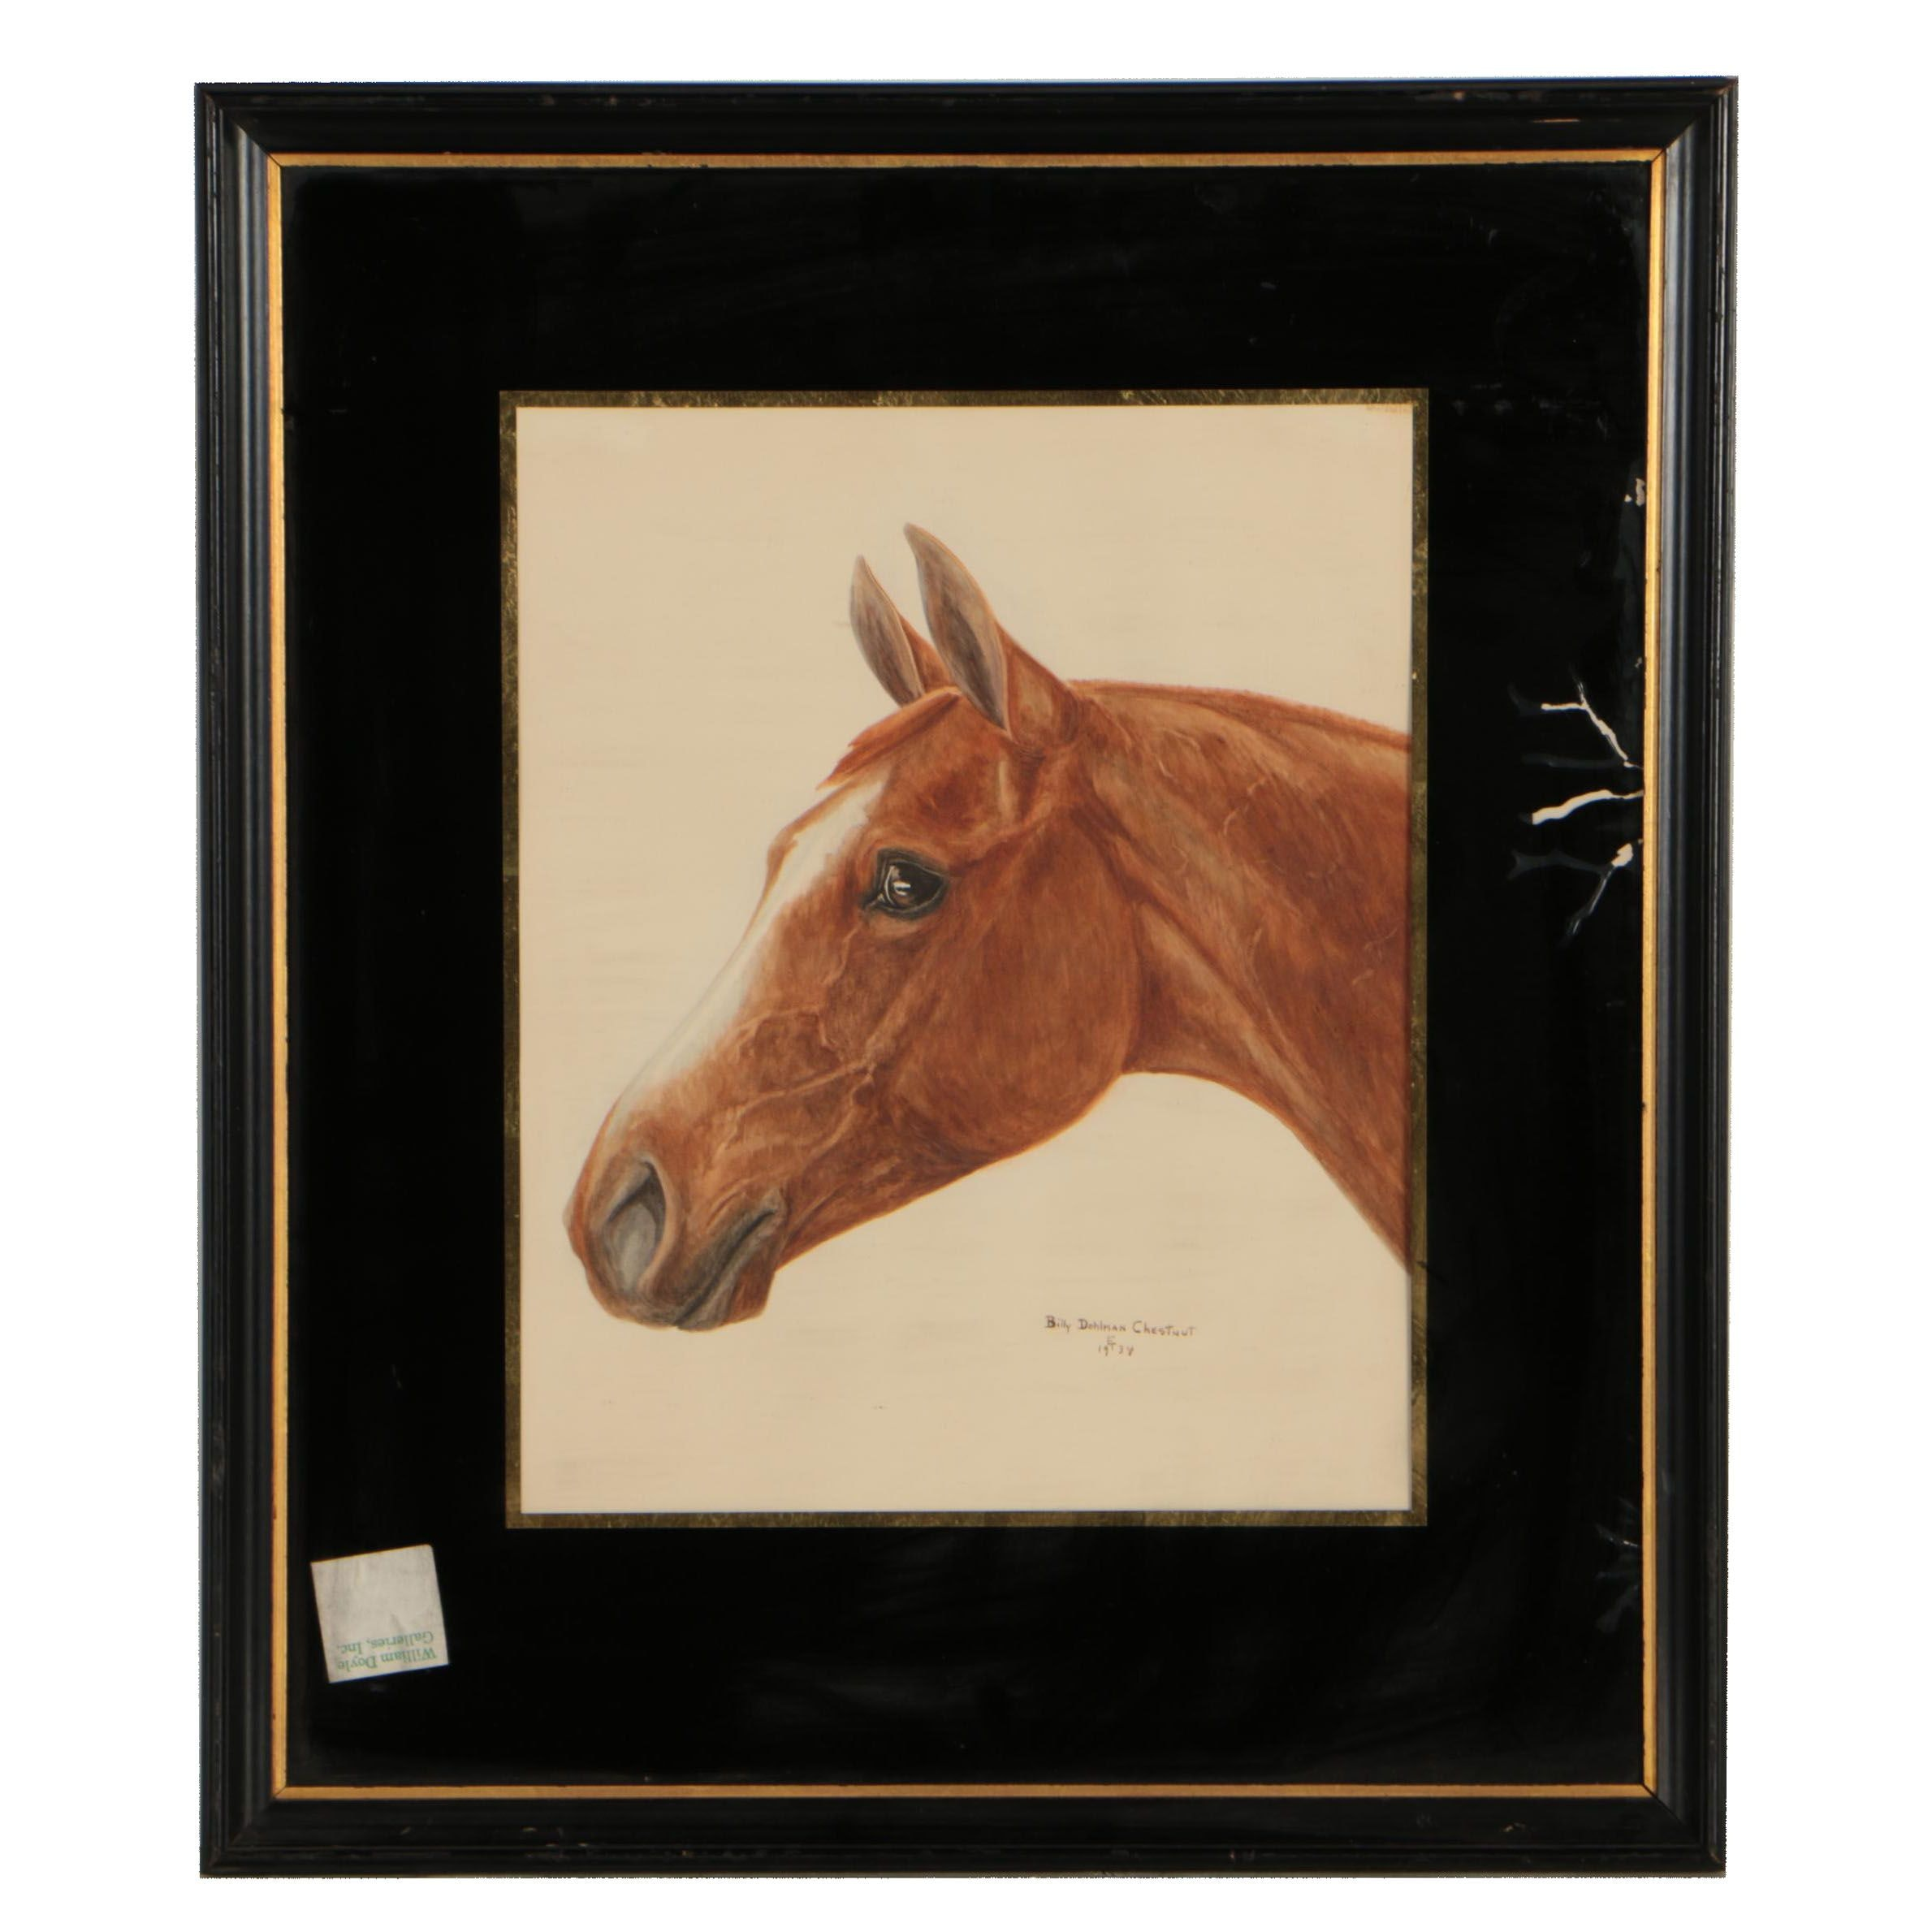 Billy Dohlman Chestnut 1934 Watercolor Painting of Horse